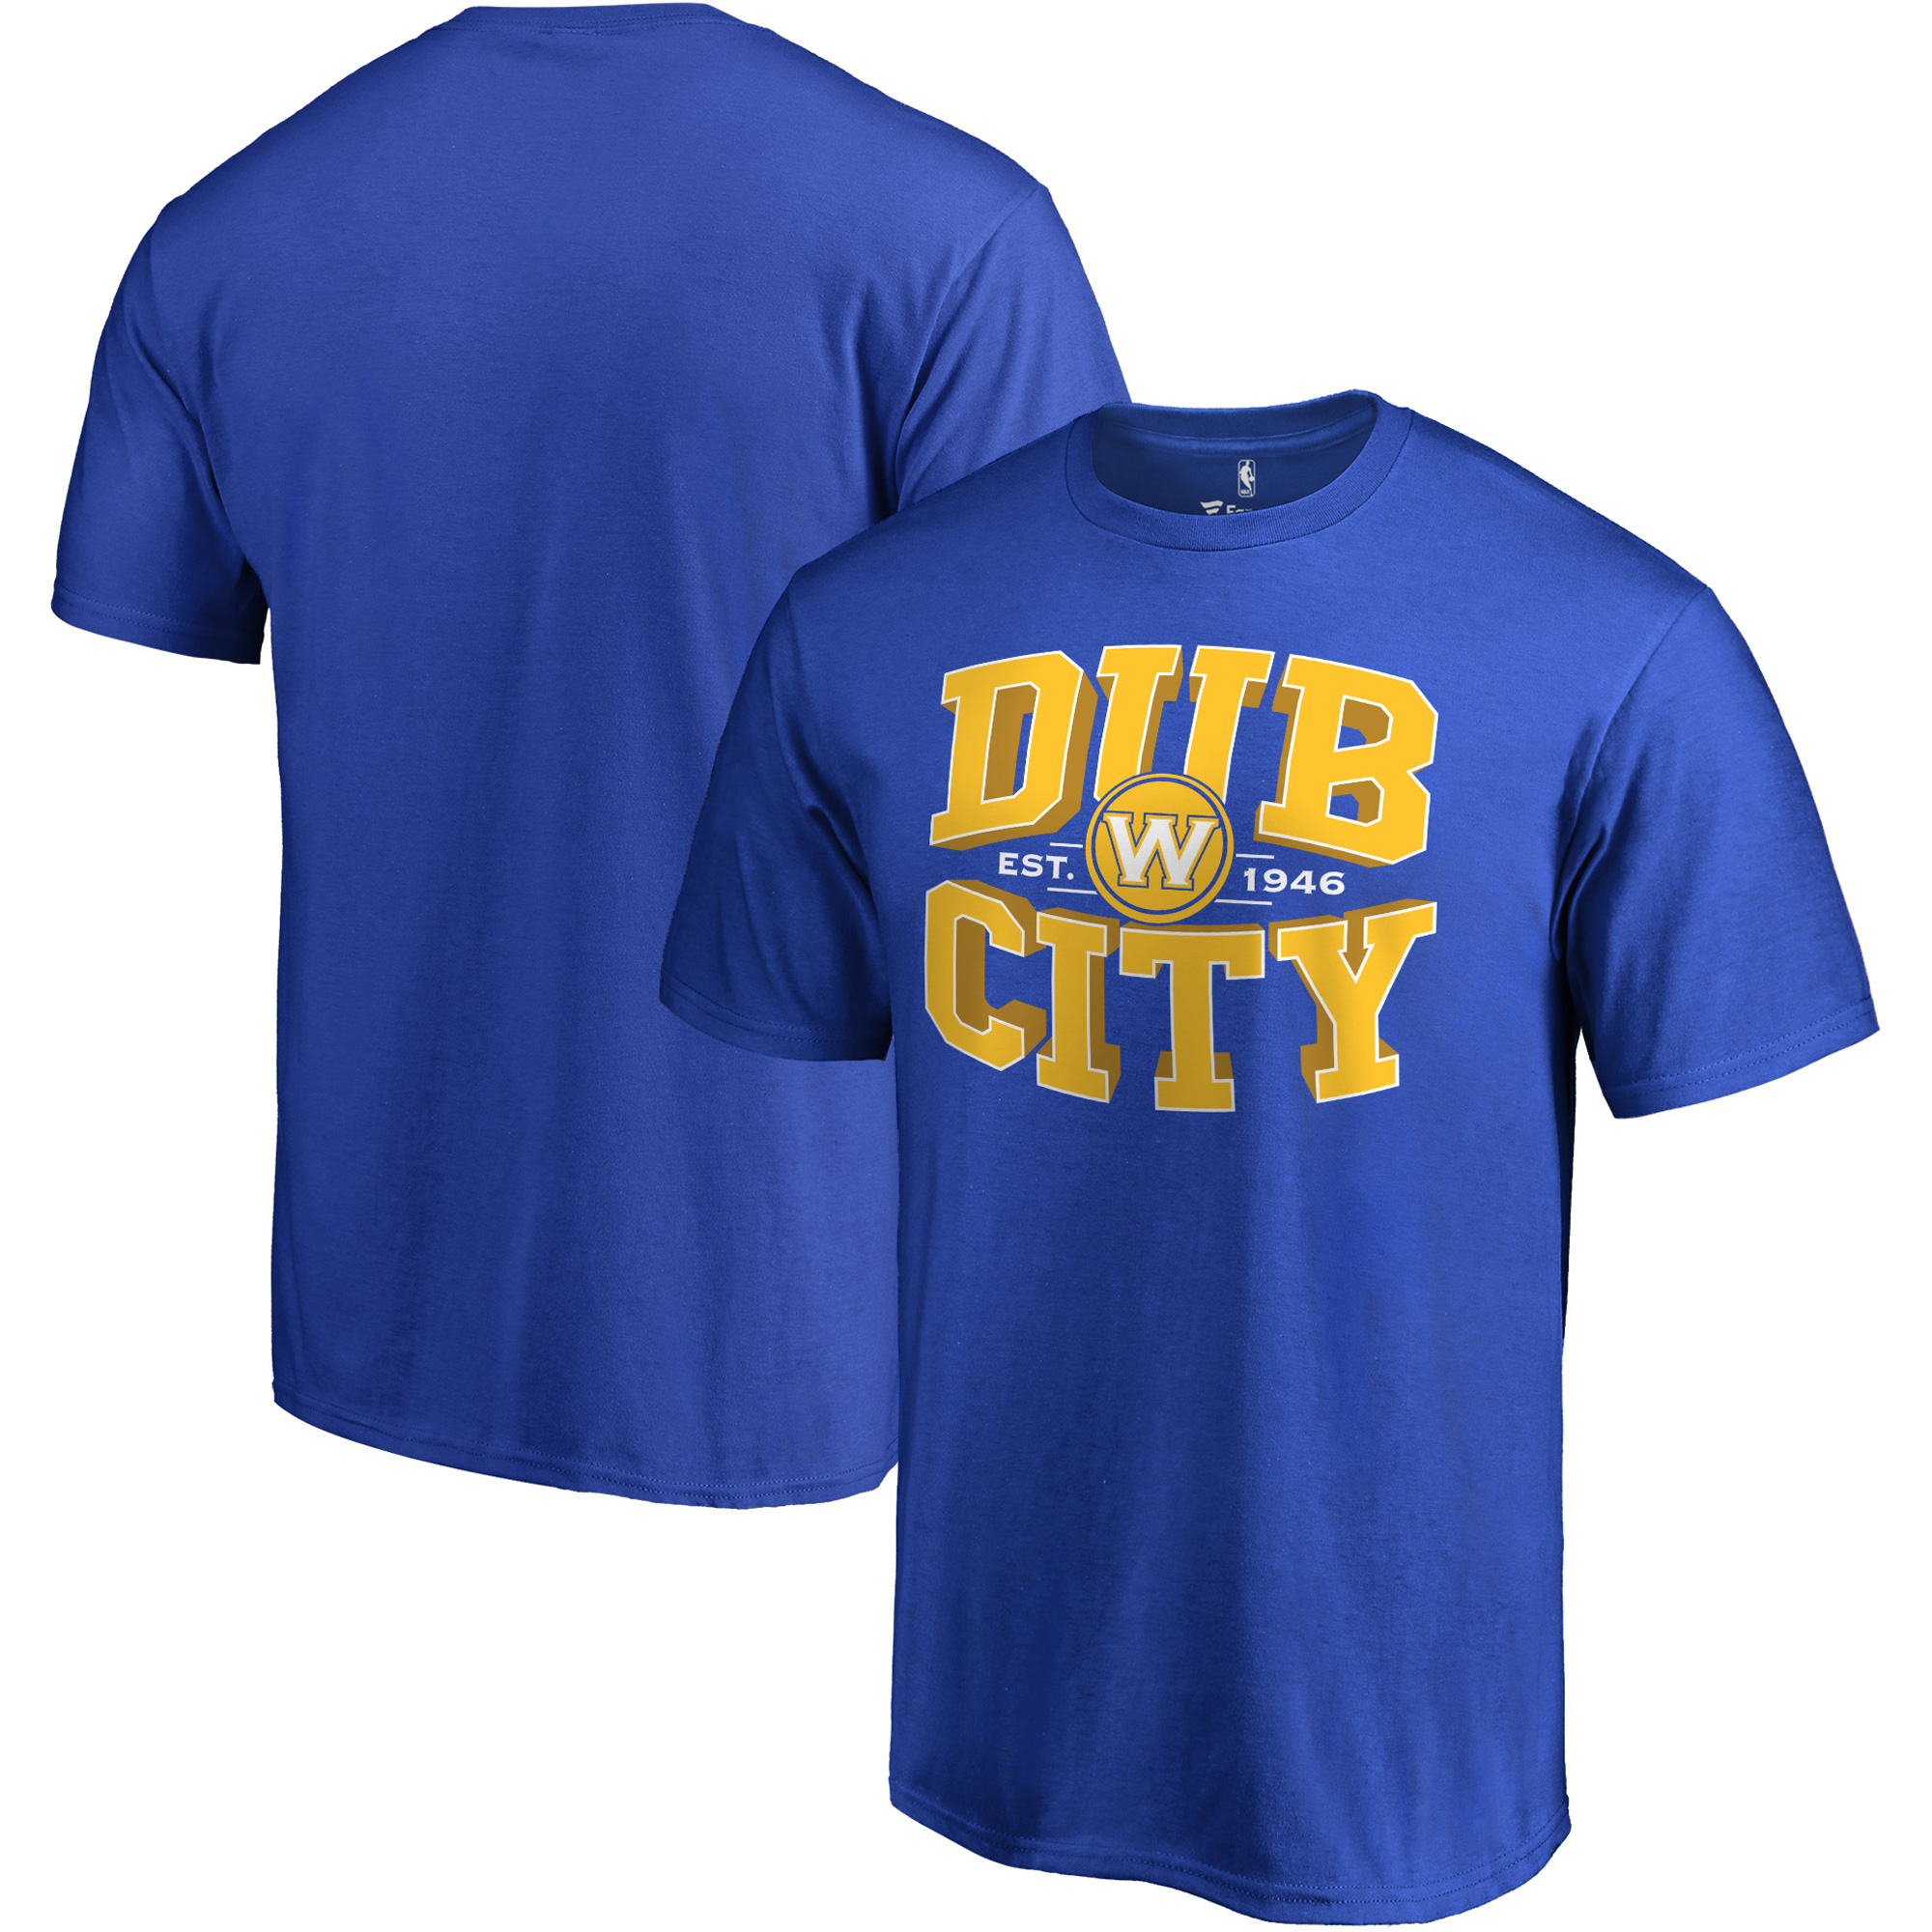 Golden State Warriors Fanatics Branded Hometown Collection Dub City T-Shirt - Royal